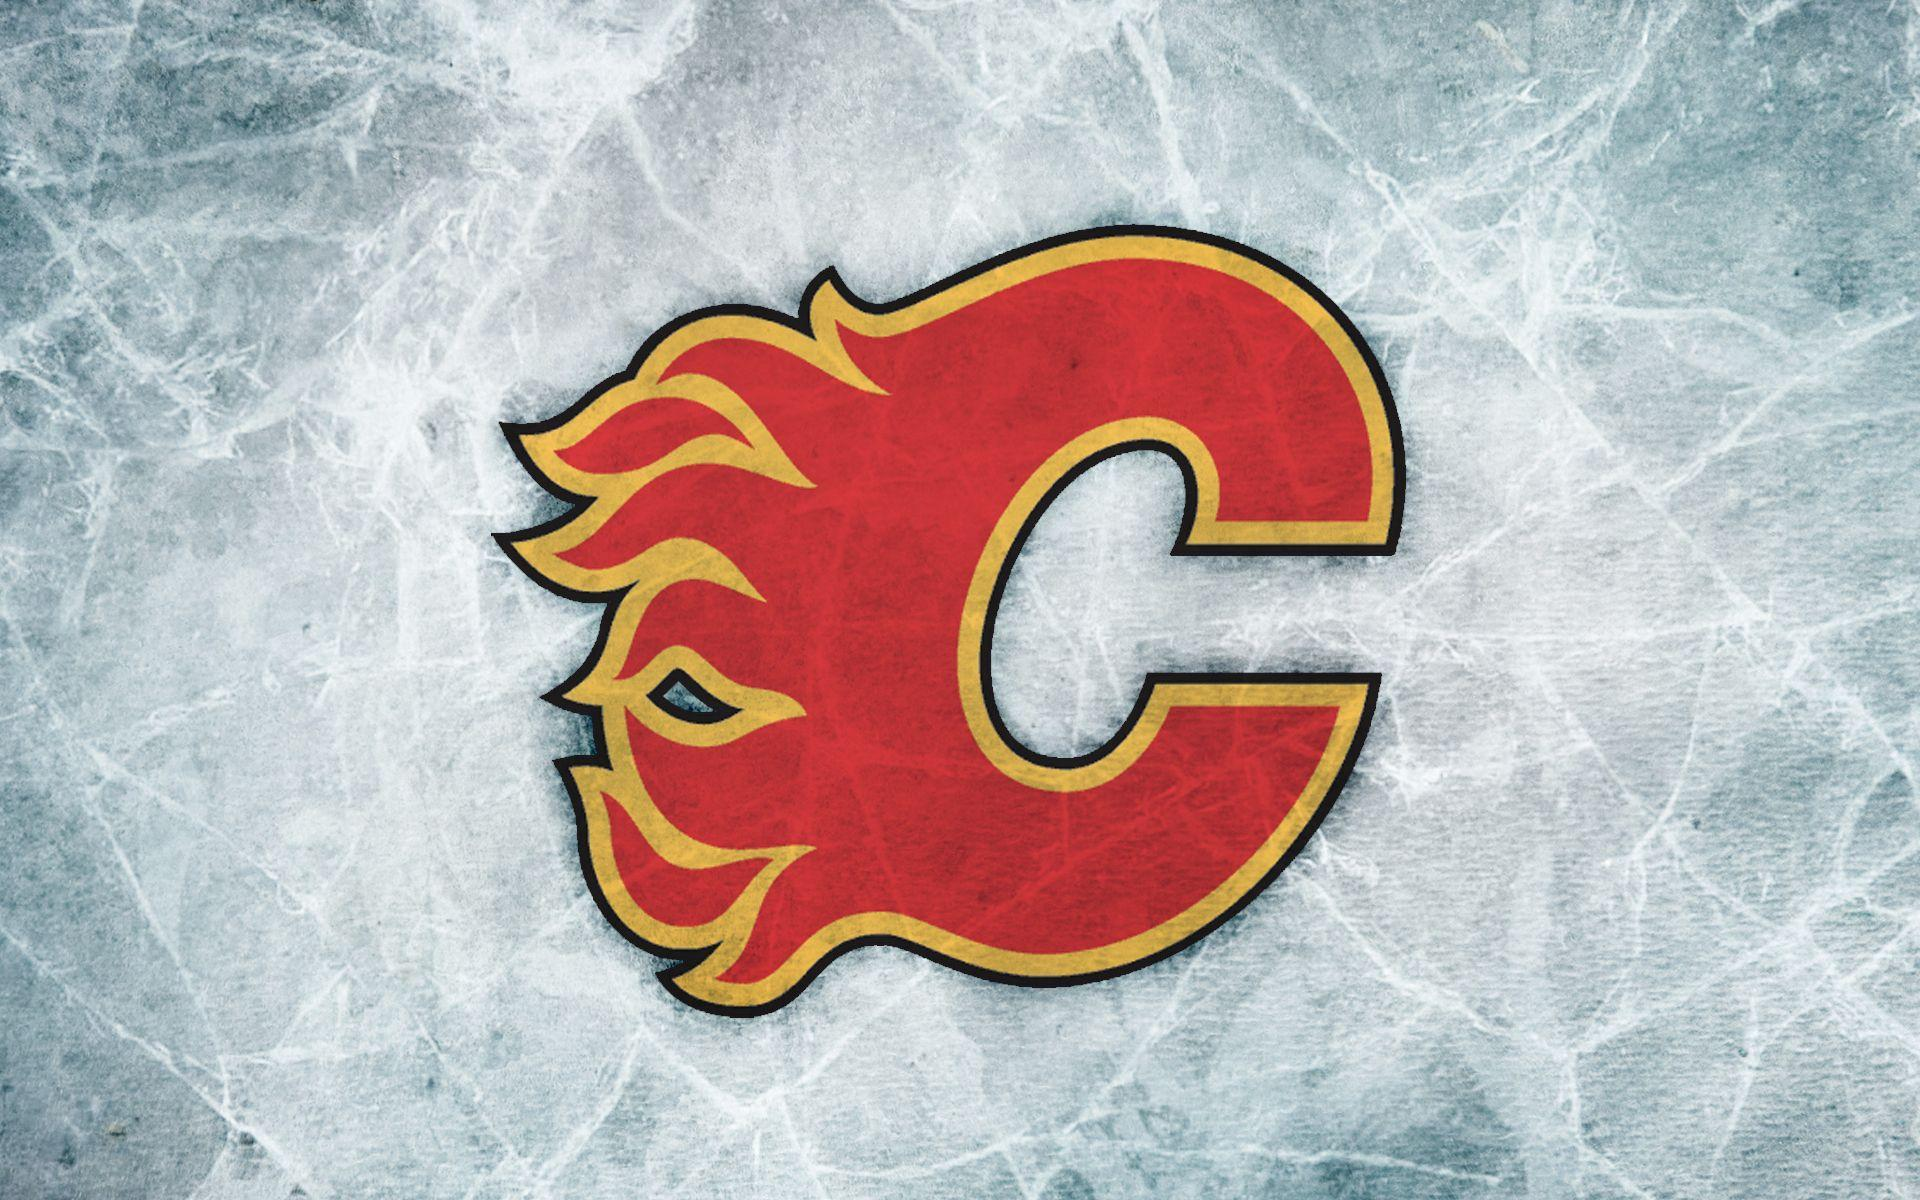 Calgary Flames Ice Hockey Wallpapers Wallpaper Cave